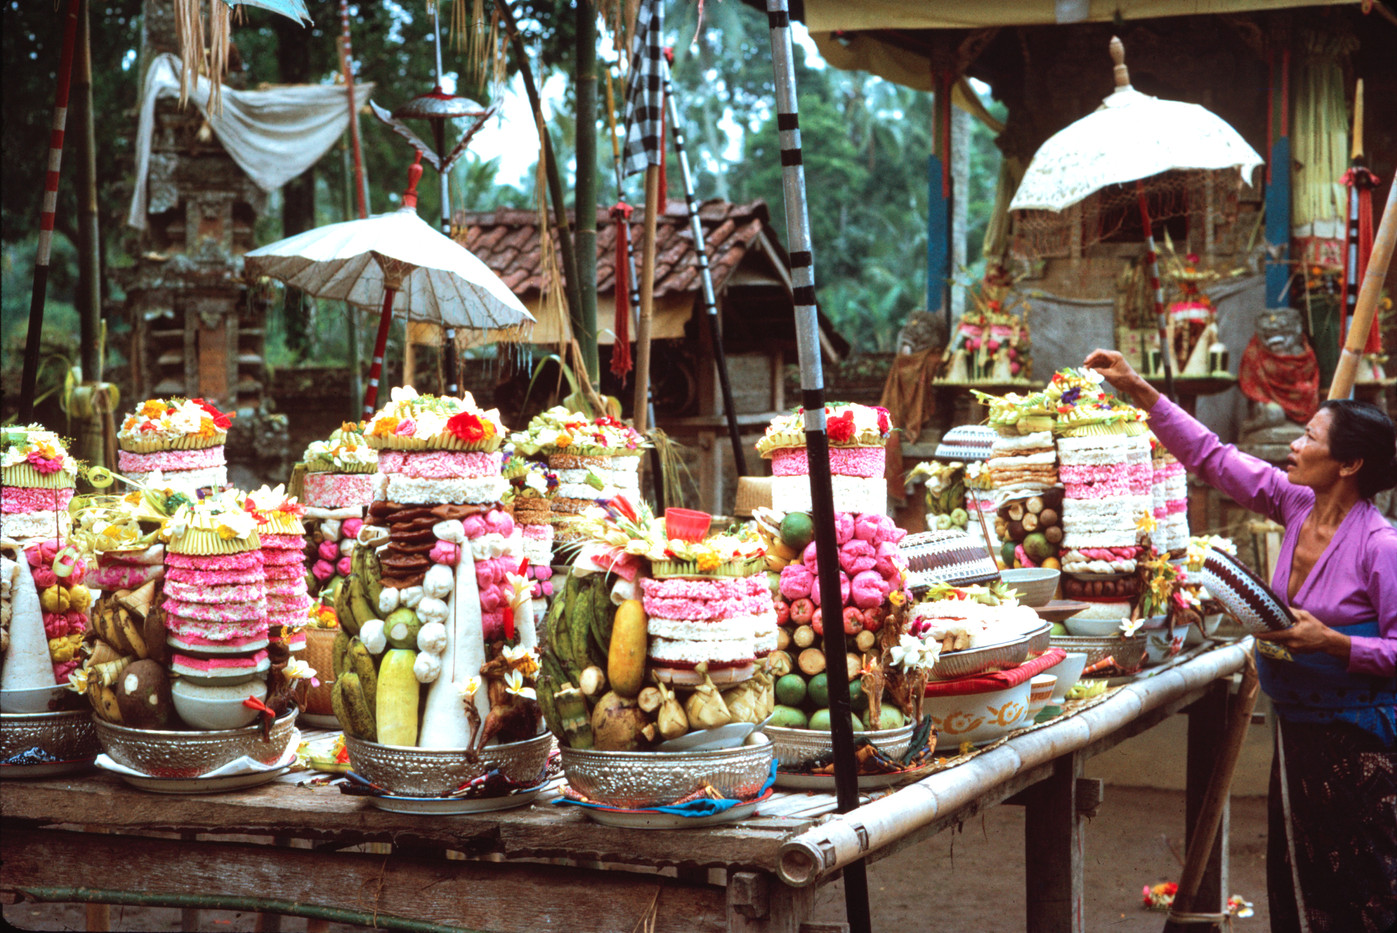 Temple offerings laid out